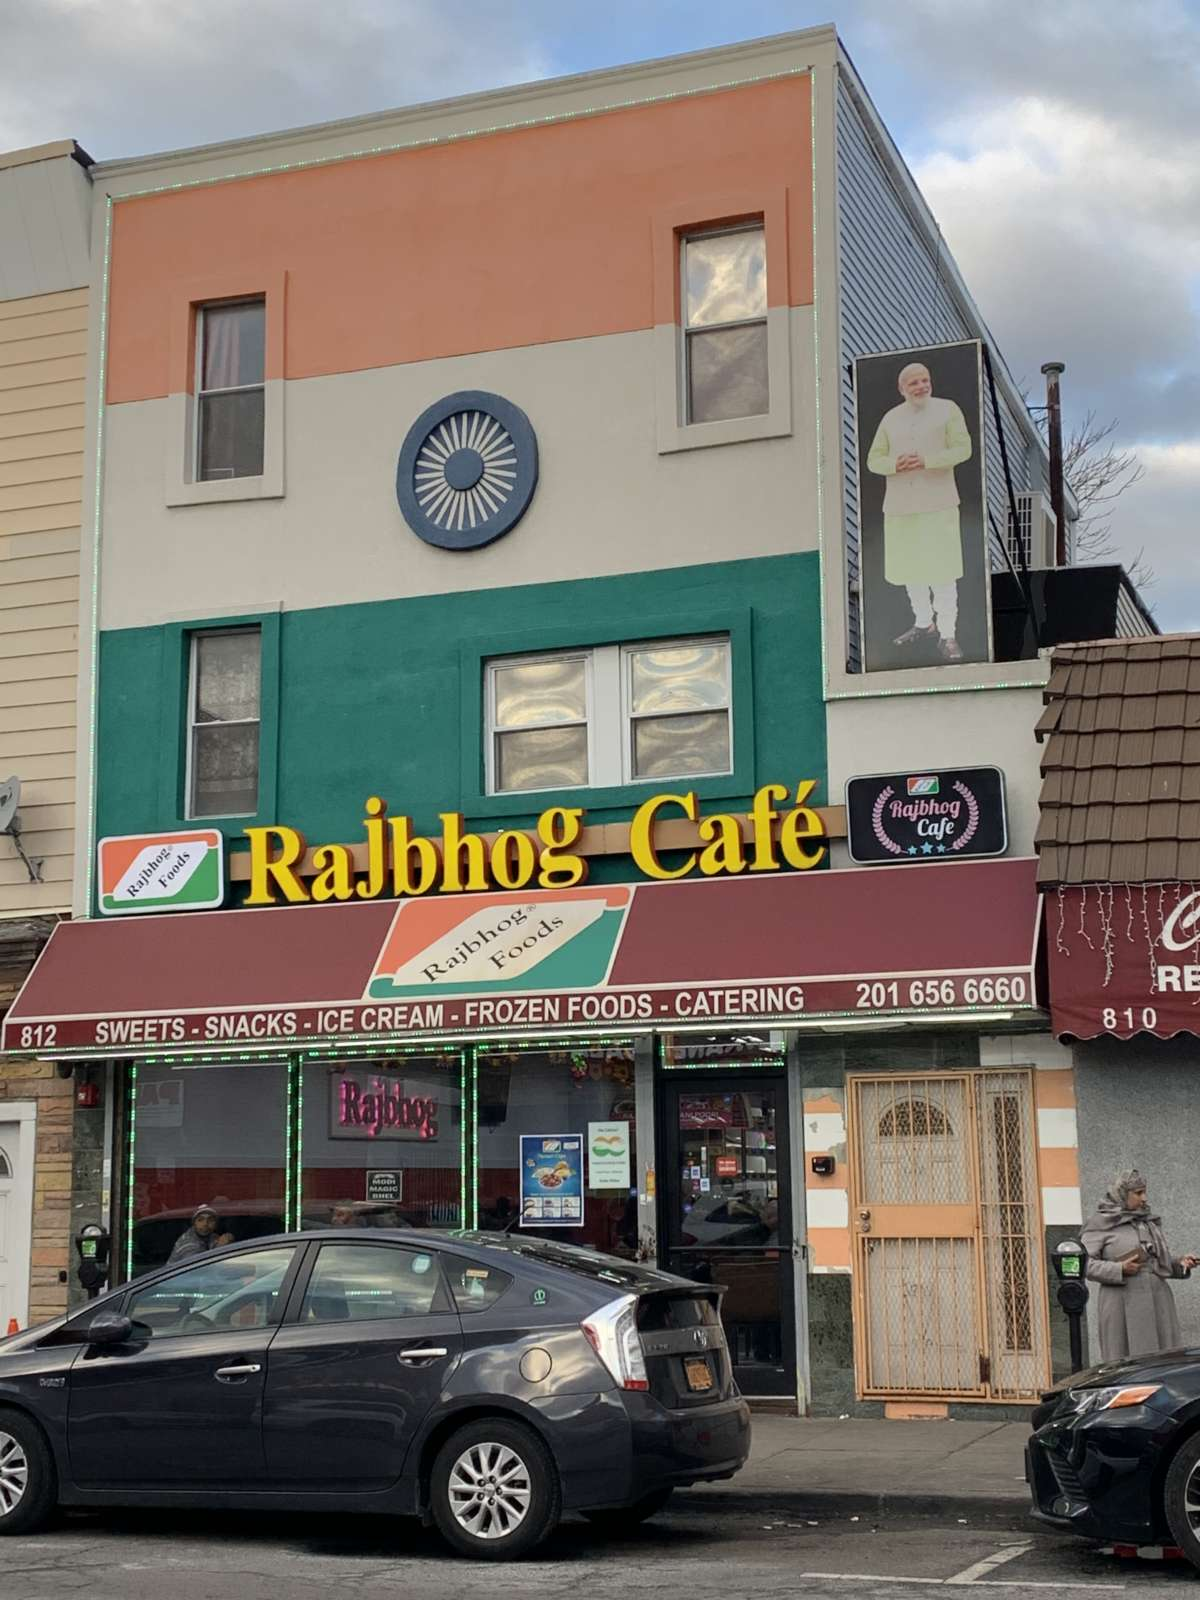 Rajbhog Cafe on Newark Avenue, Jersey City, NJ, where a large picture of a picture of Narendra Modi is hung above.